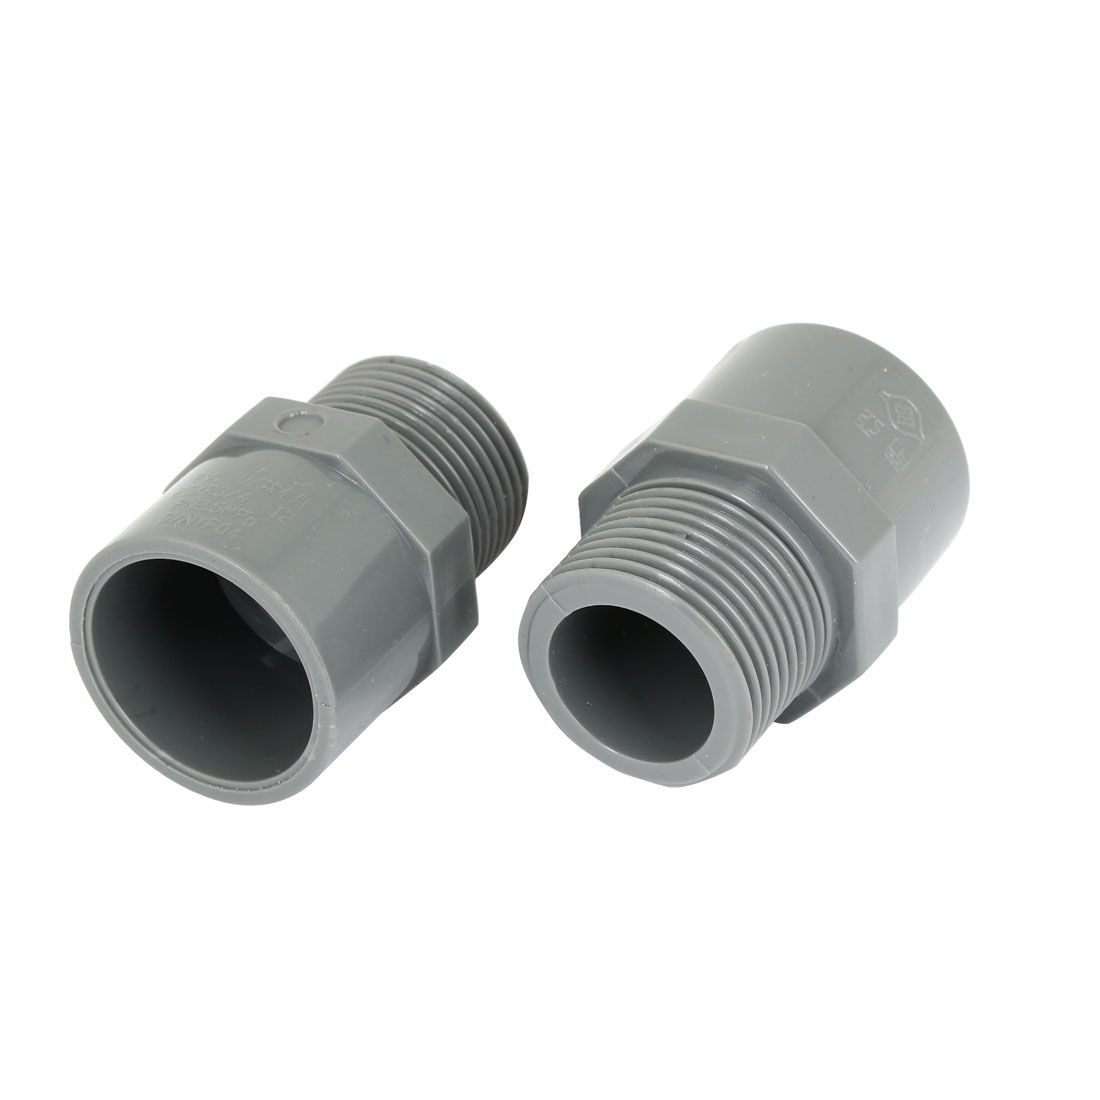 "2pcs 3/4"" PT Male Thread PVC Straight Pipe Tube Adapter Connectors Gray"